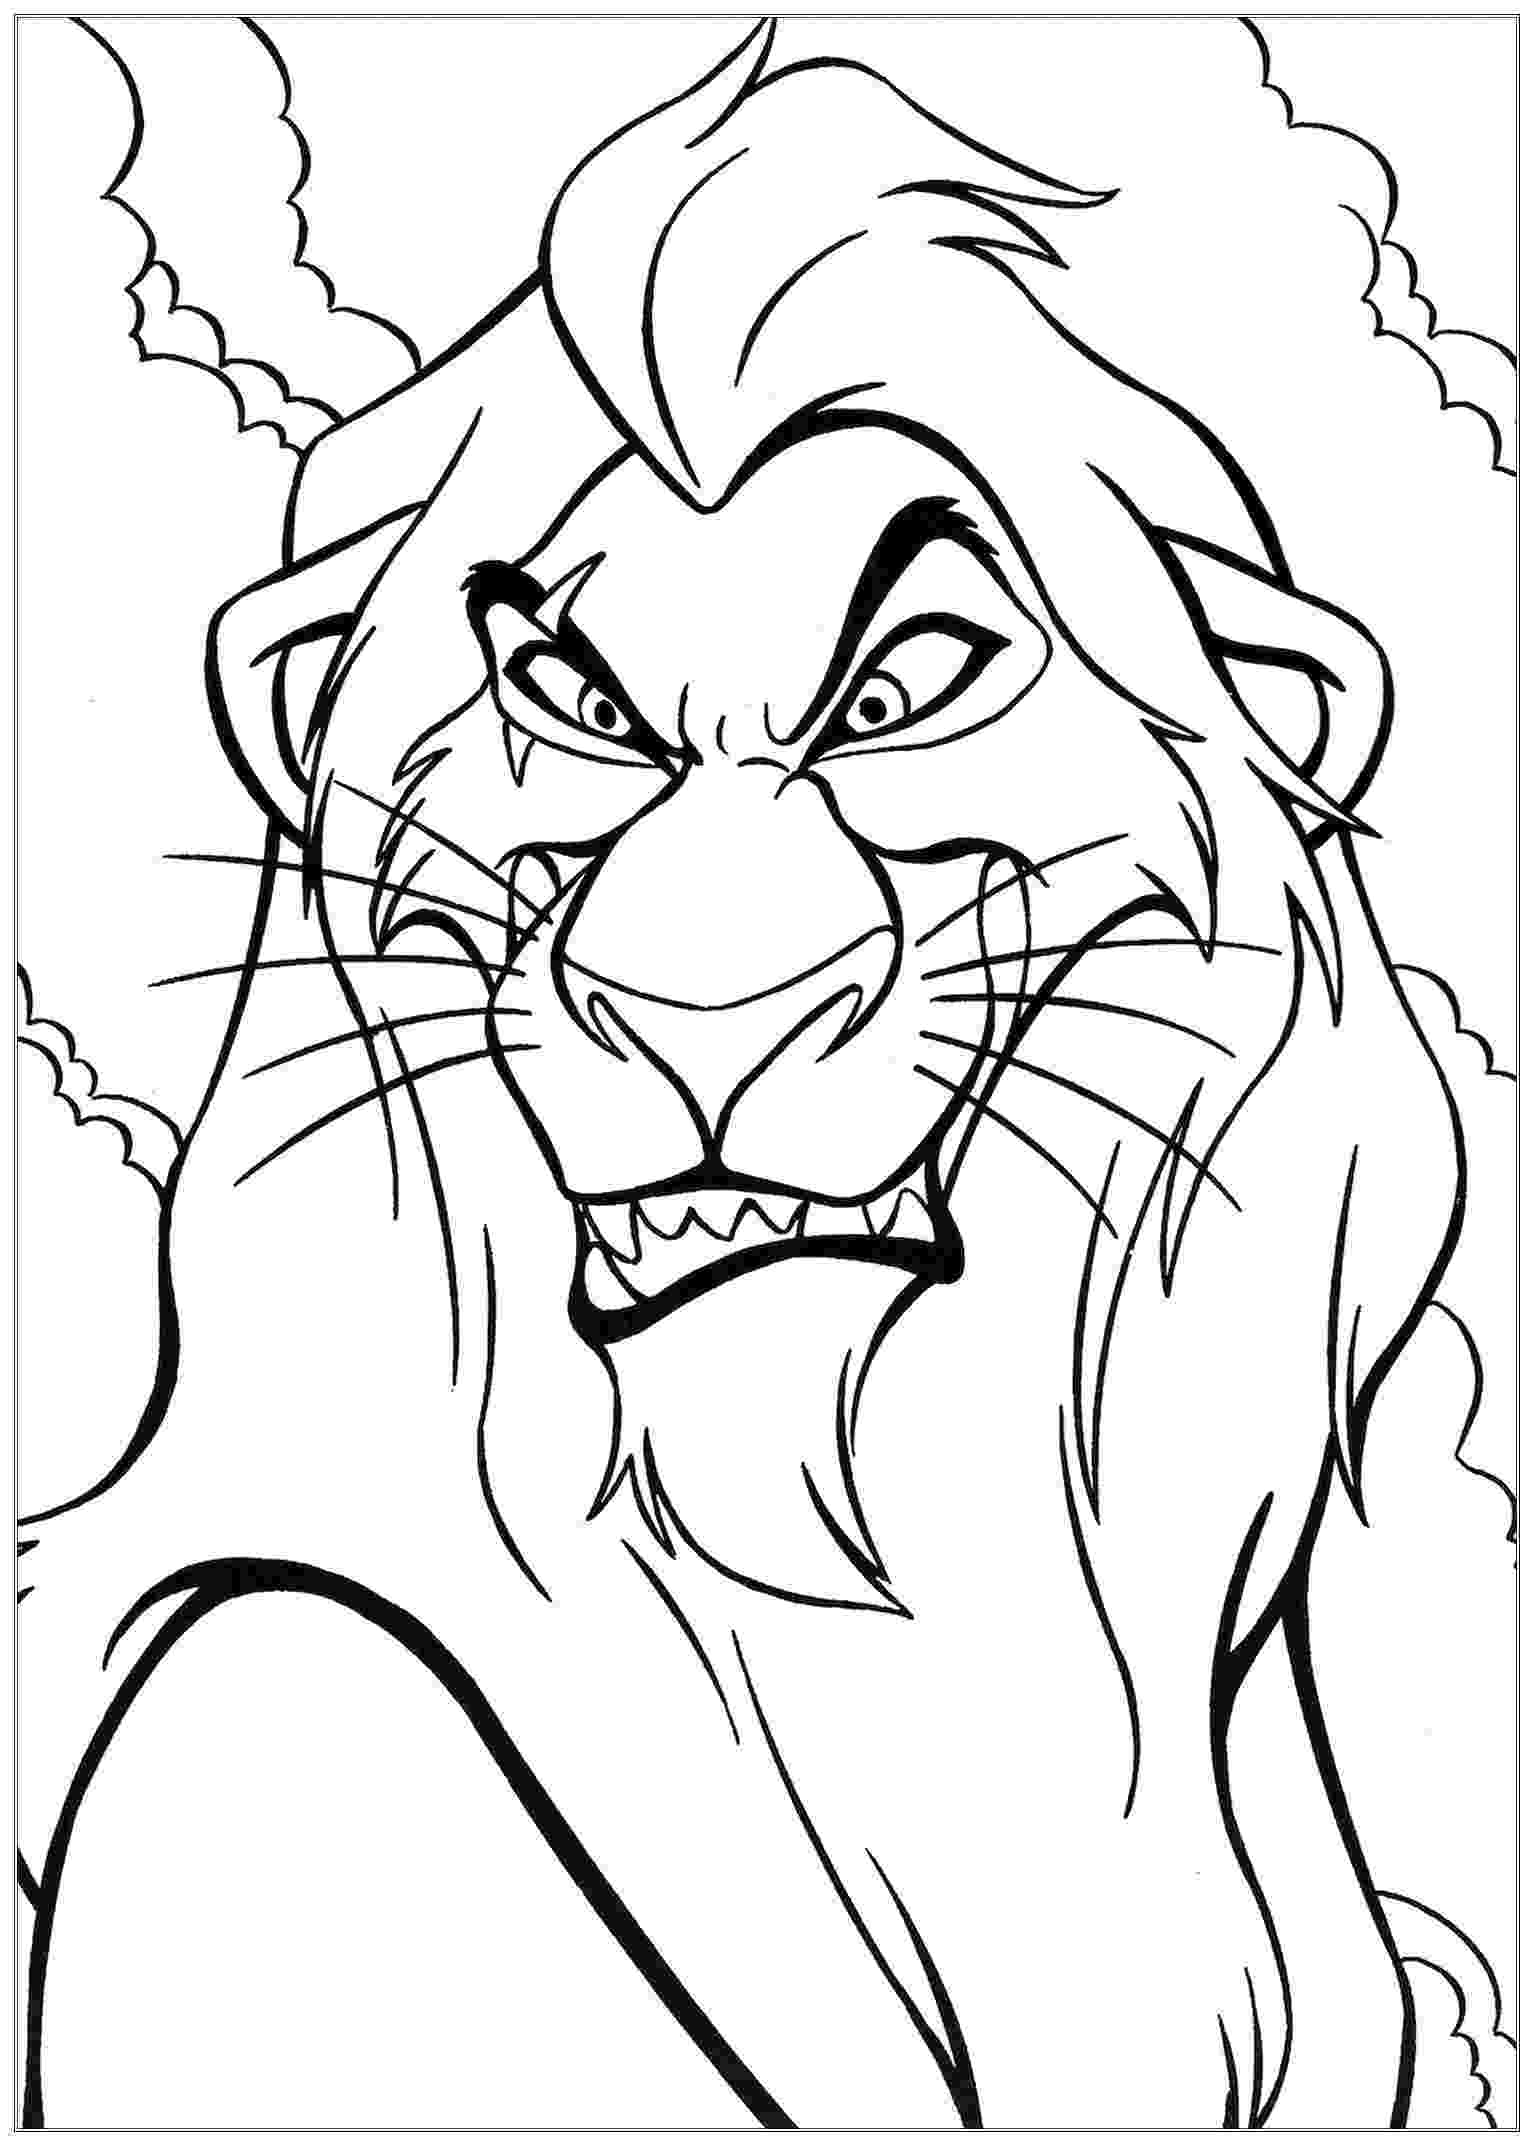 free colouring pages lion king 18 best simba lion king coloring pages visual arts ideas pages lion colouring free king